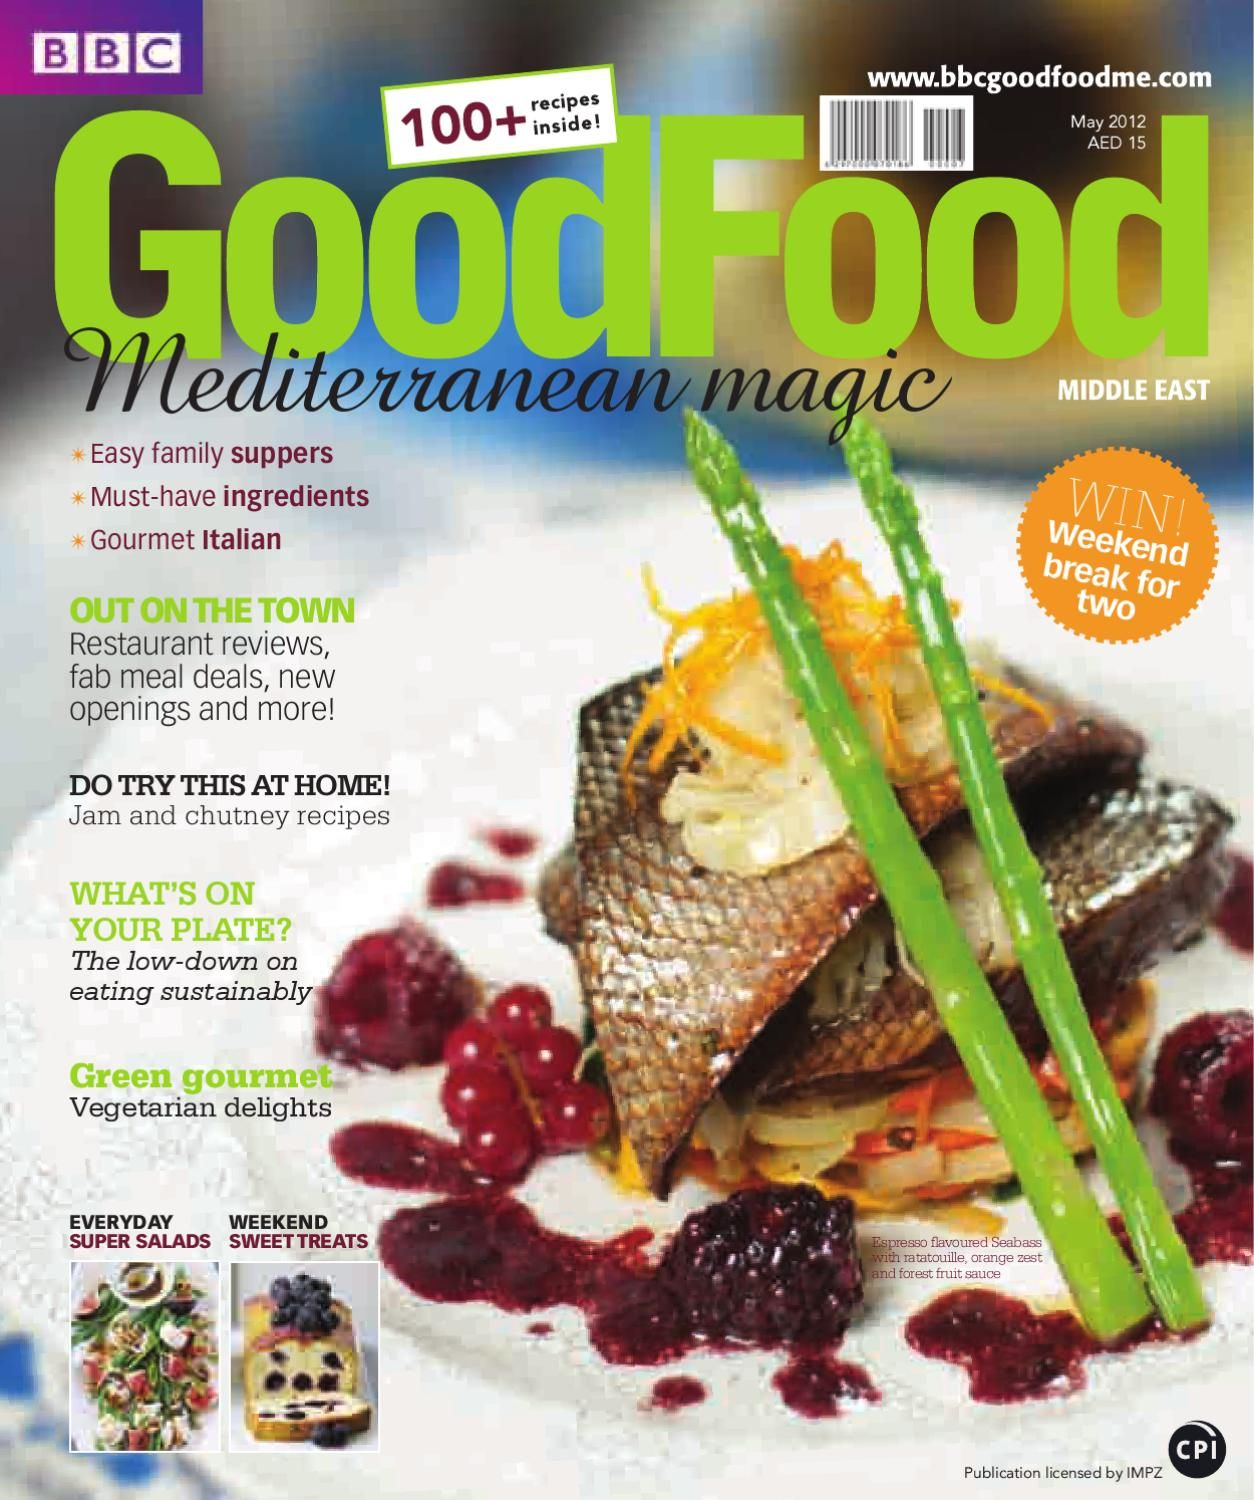 Bbc good food middle east magazine middle east bbc and everyday bbc good food middle east magazine may 2012 issue bbc good food middle east is forumfinder Images